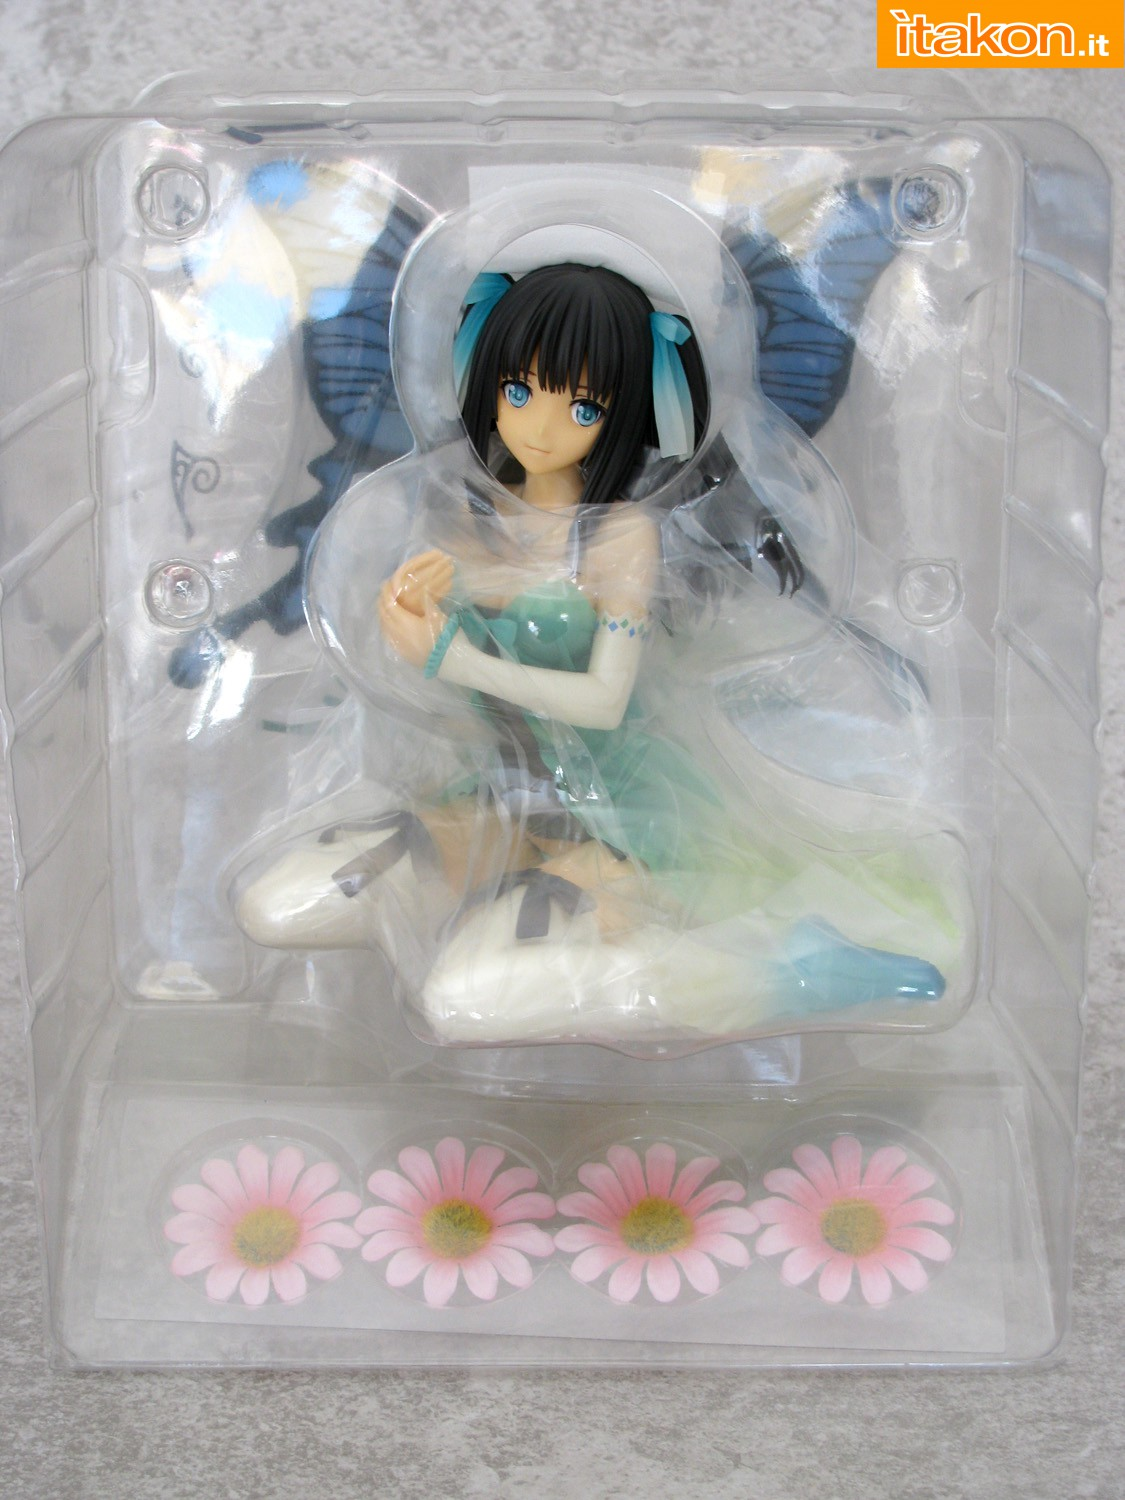 Link a 003 Daisy Tony Heroine Collection Kotobukiya recensione